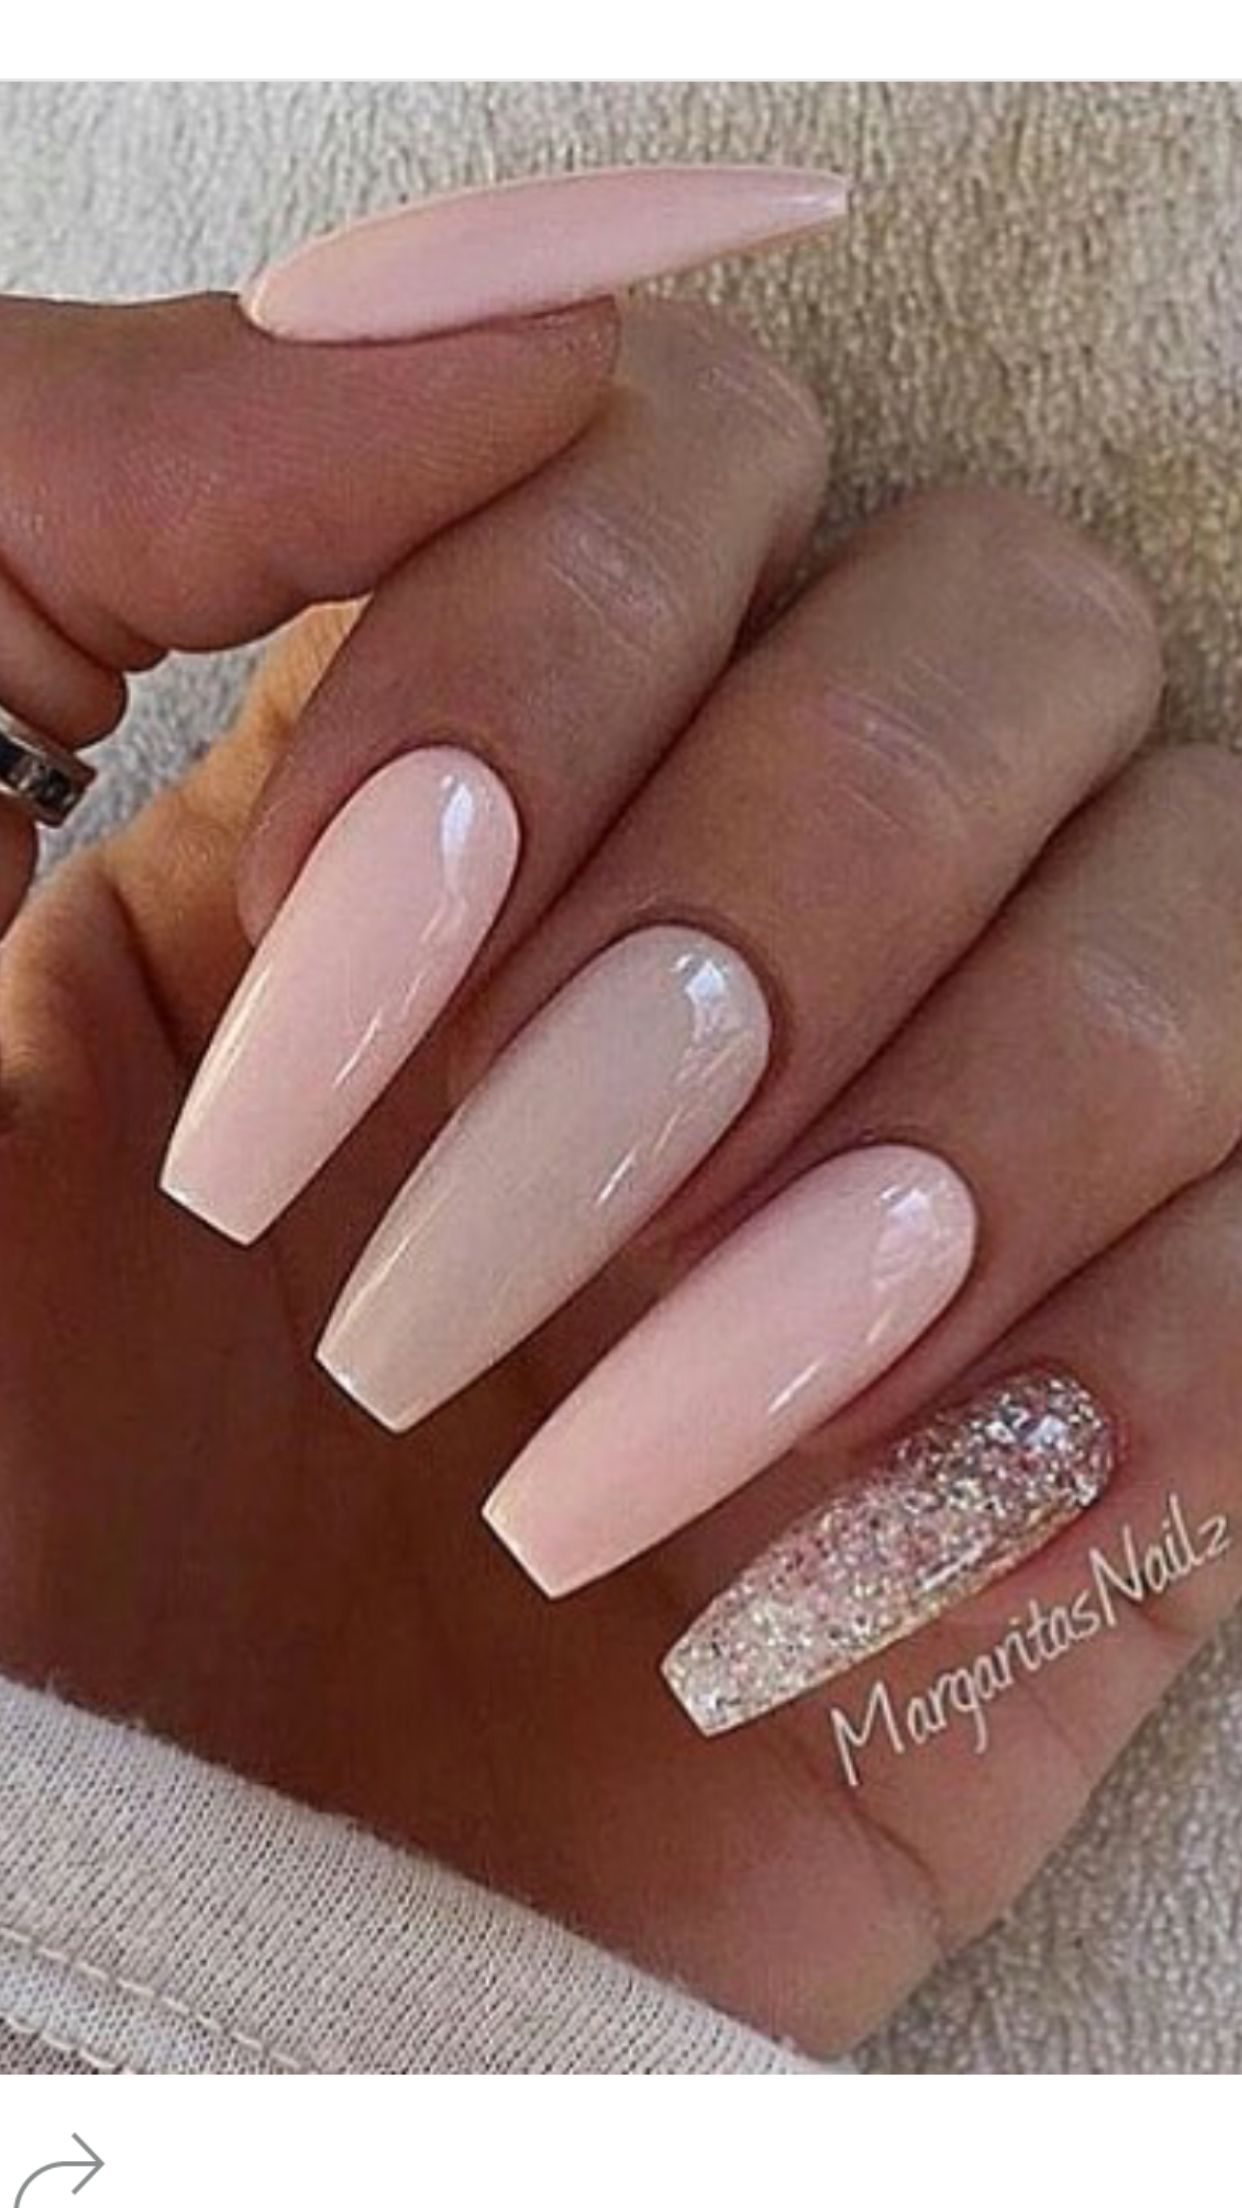 Pin on Pink and nude nail designs by MargaritasNailz